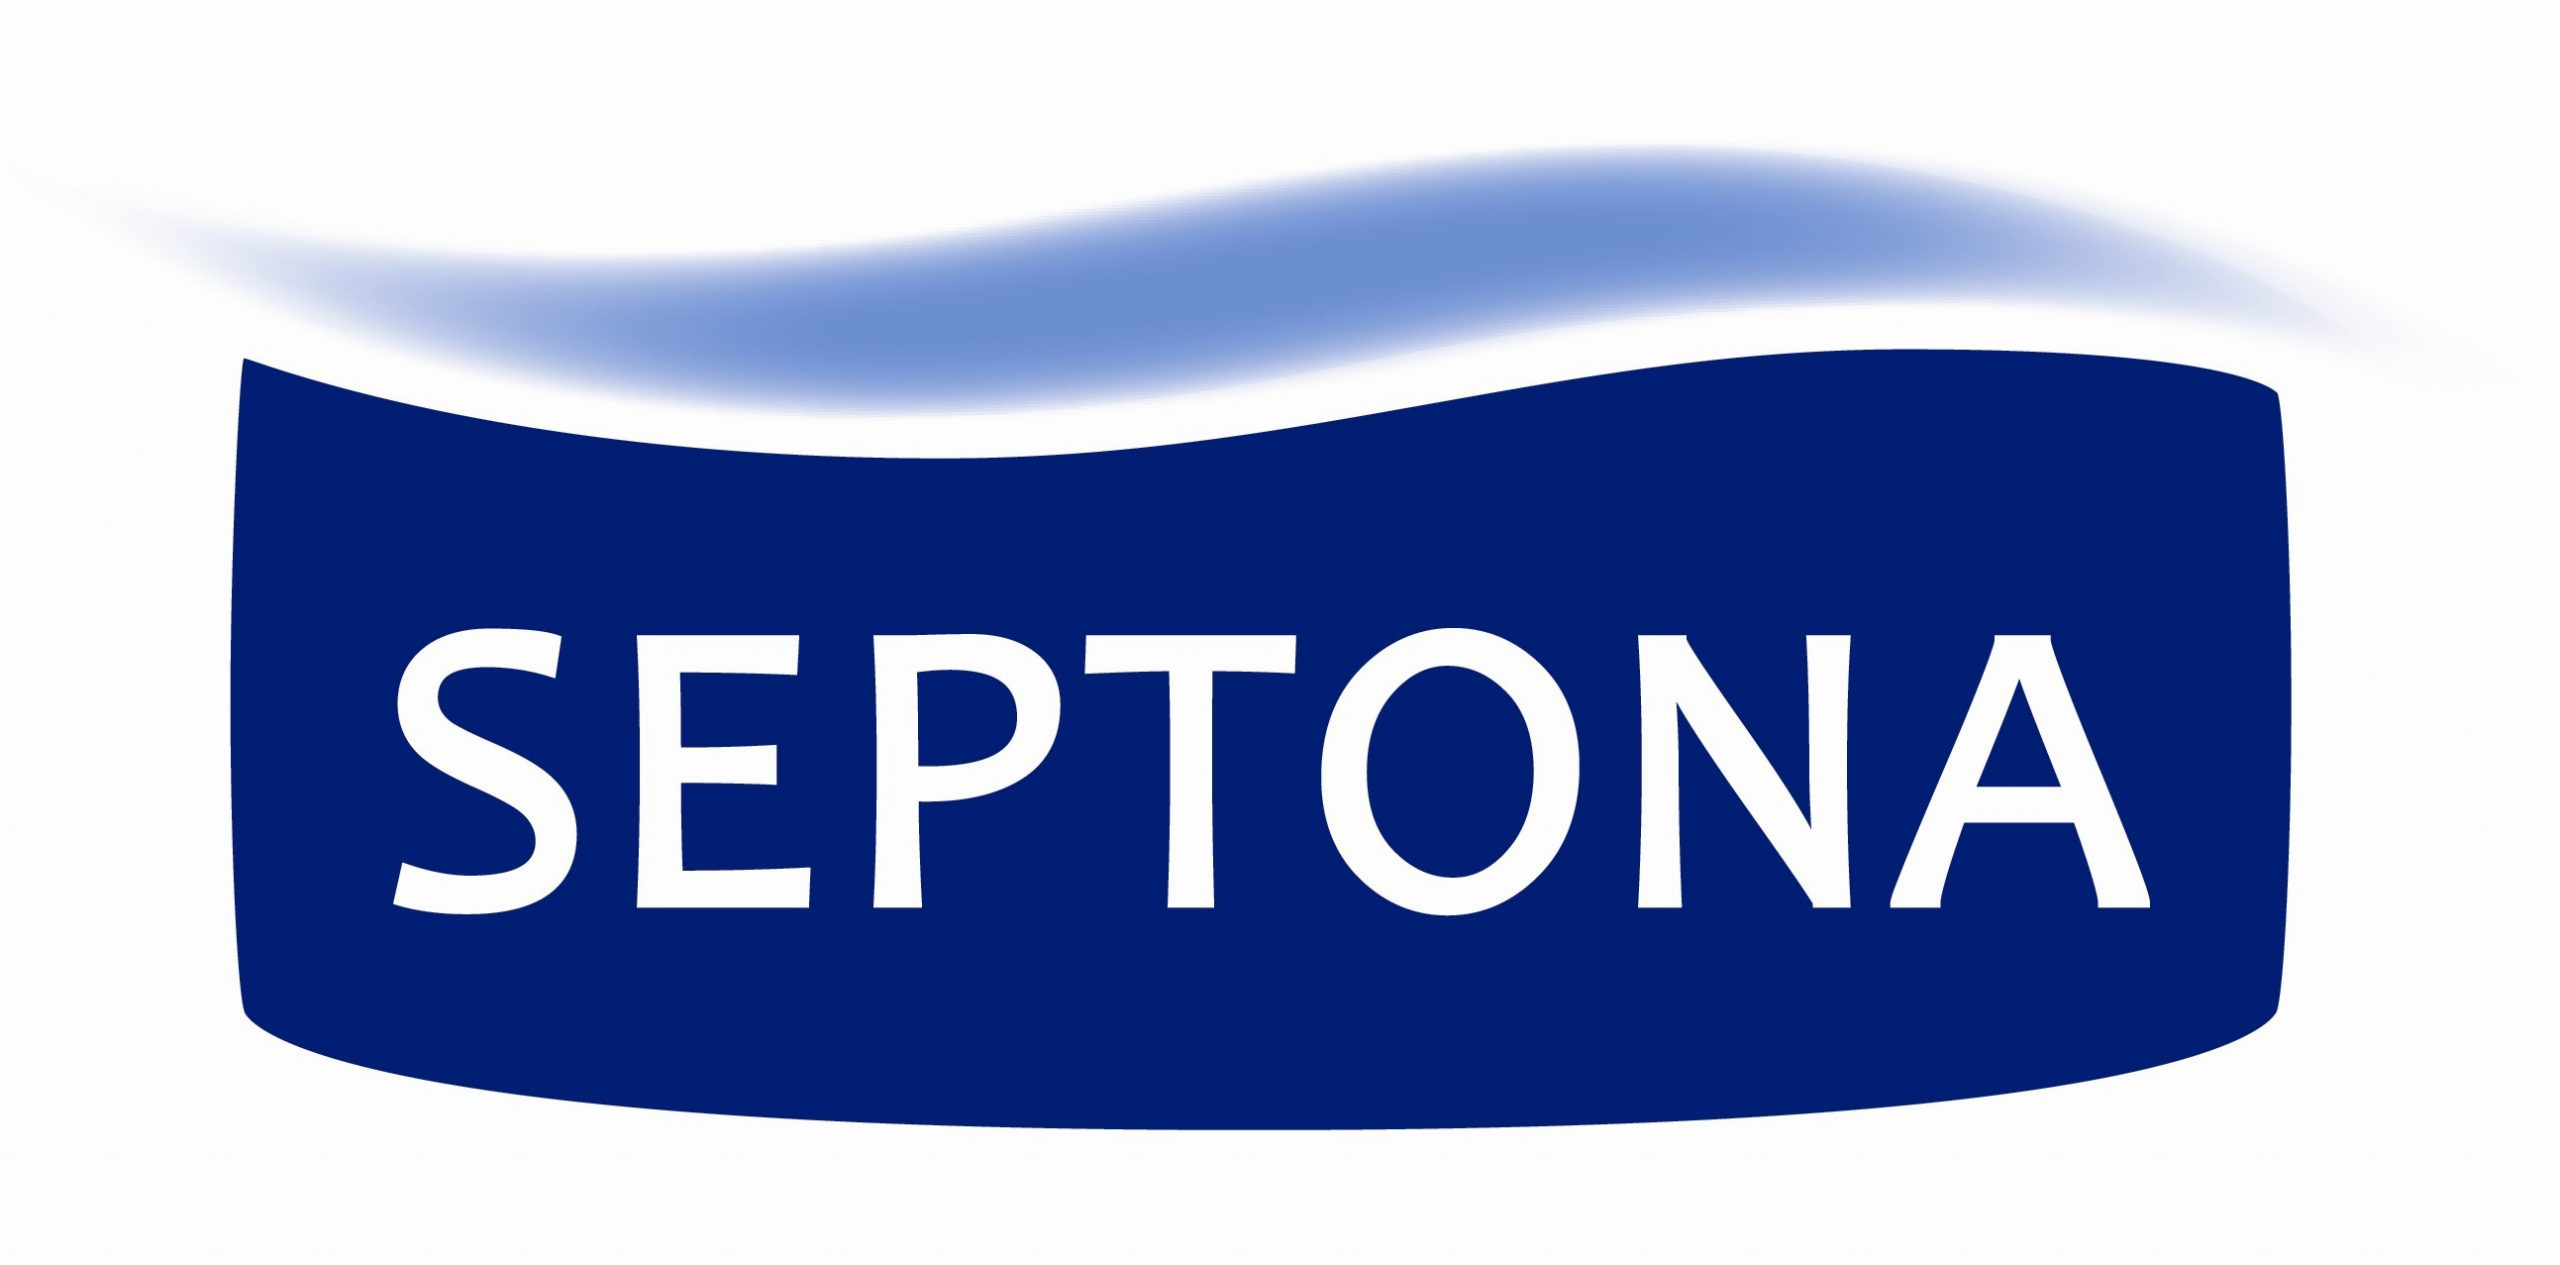 Septona